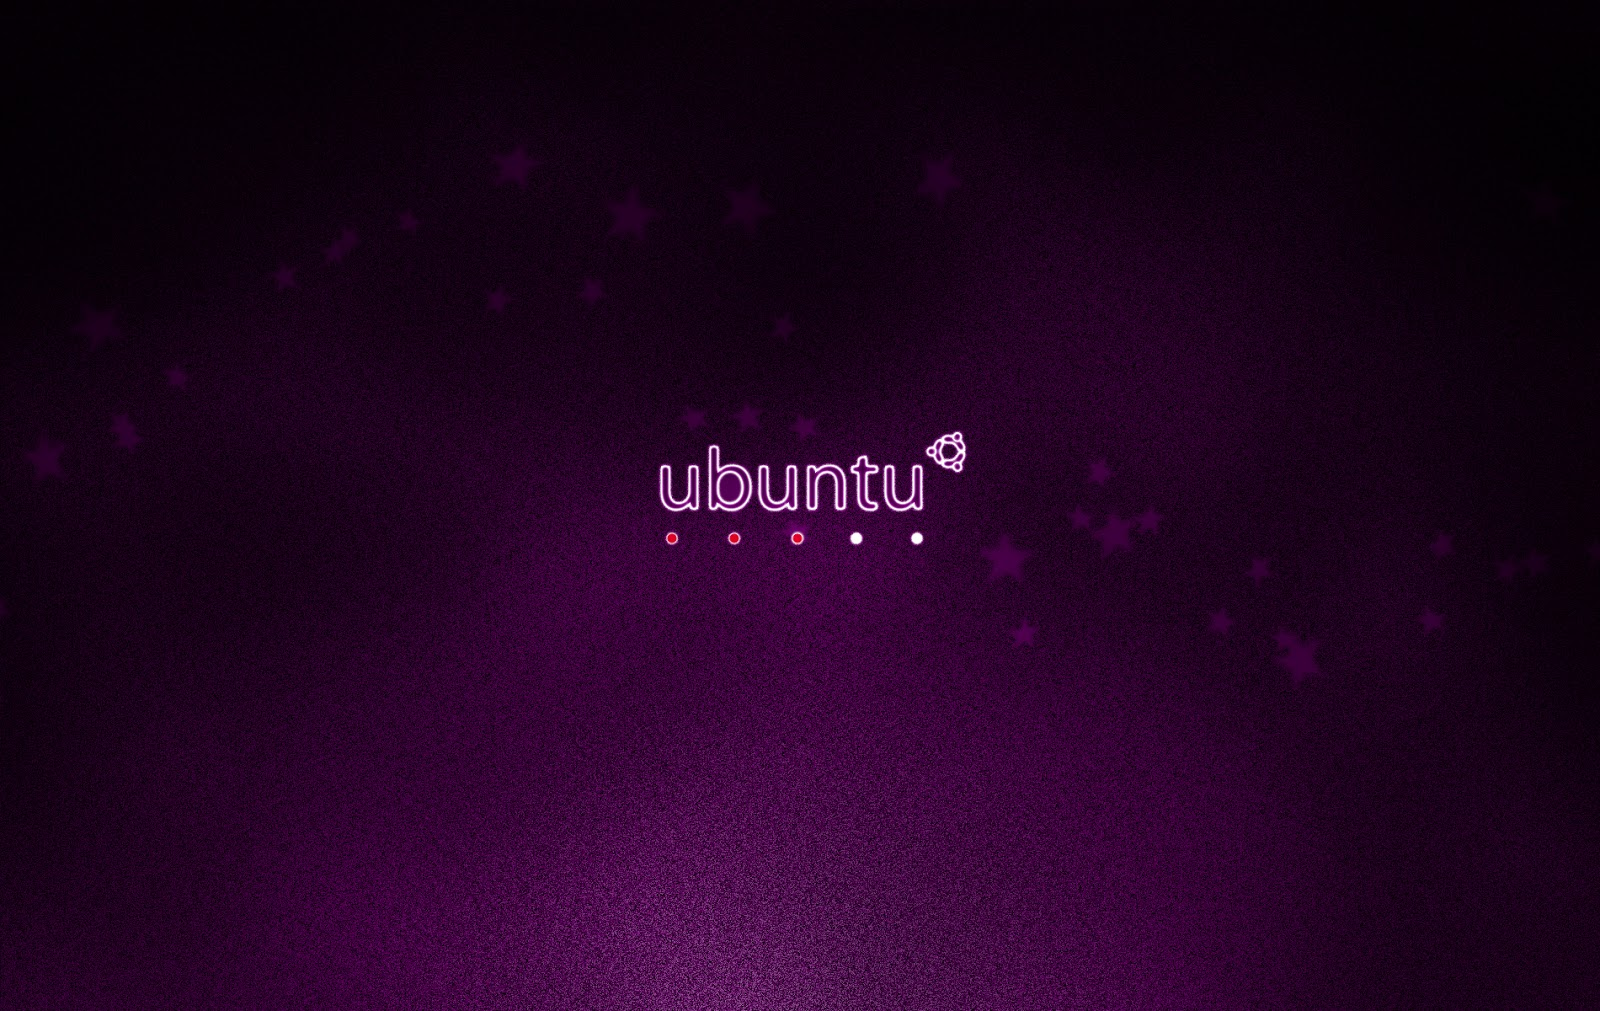 hd wallpapers ubuntu hd wallpapers